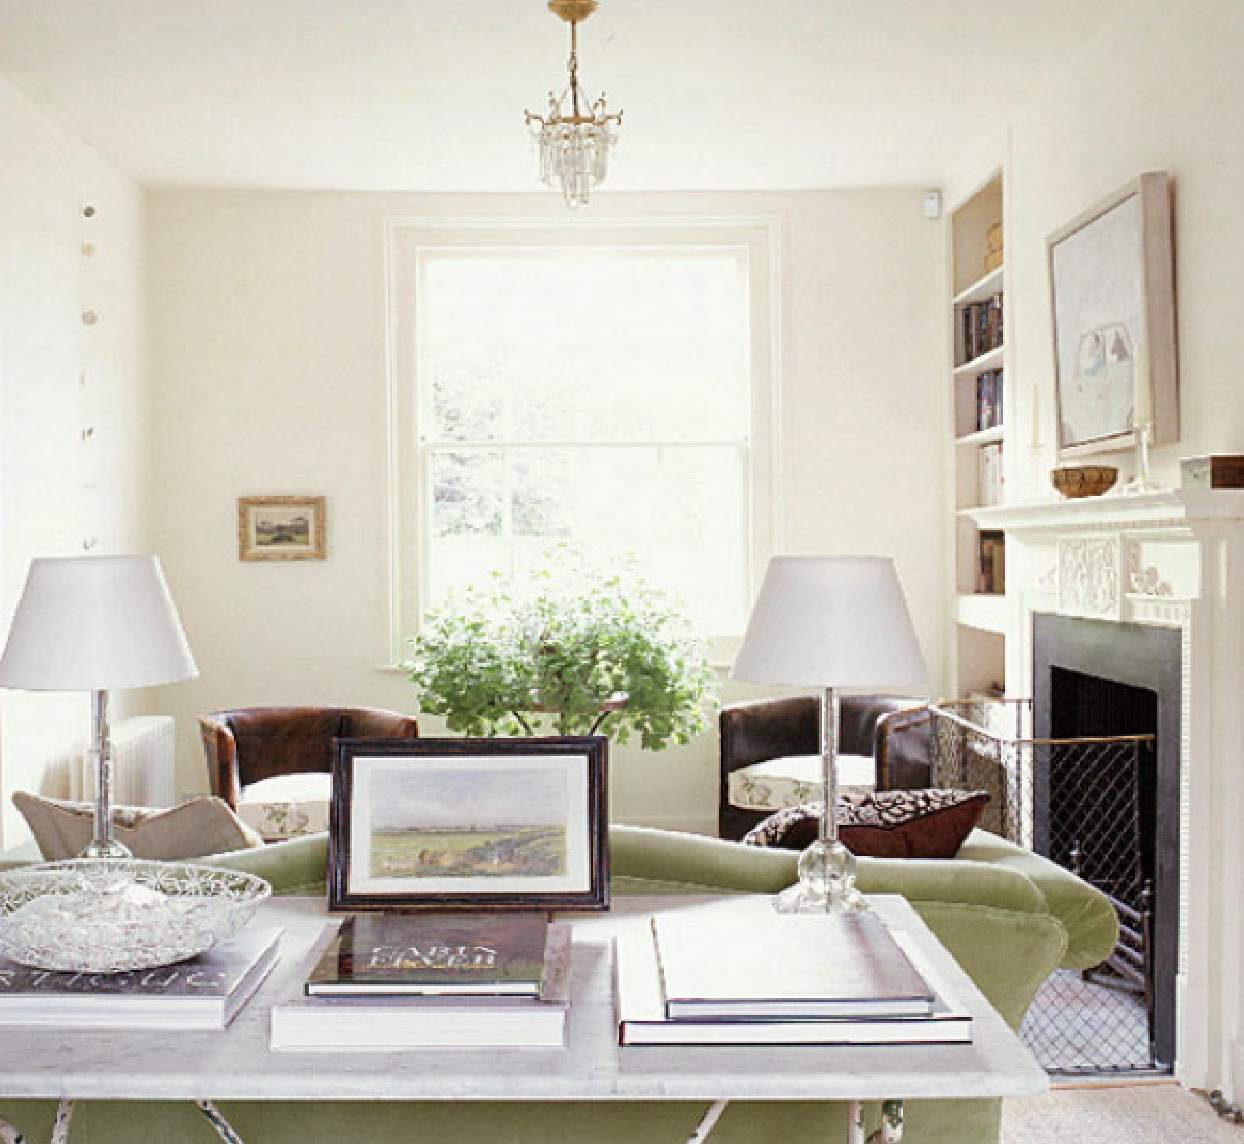 The necessity of table lamps for living room